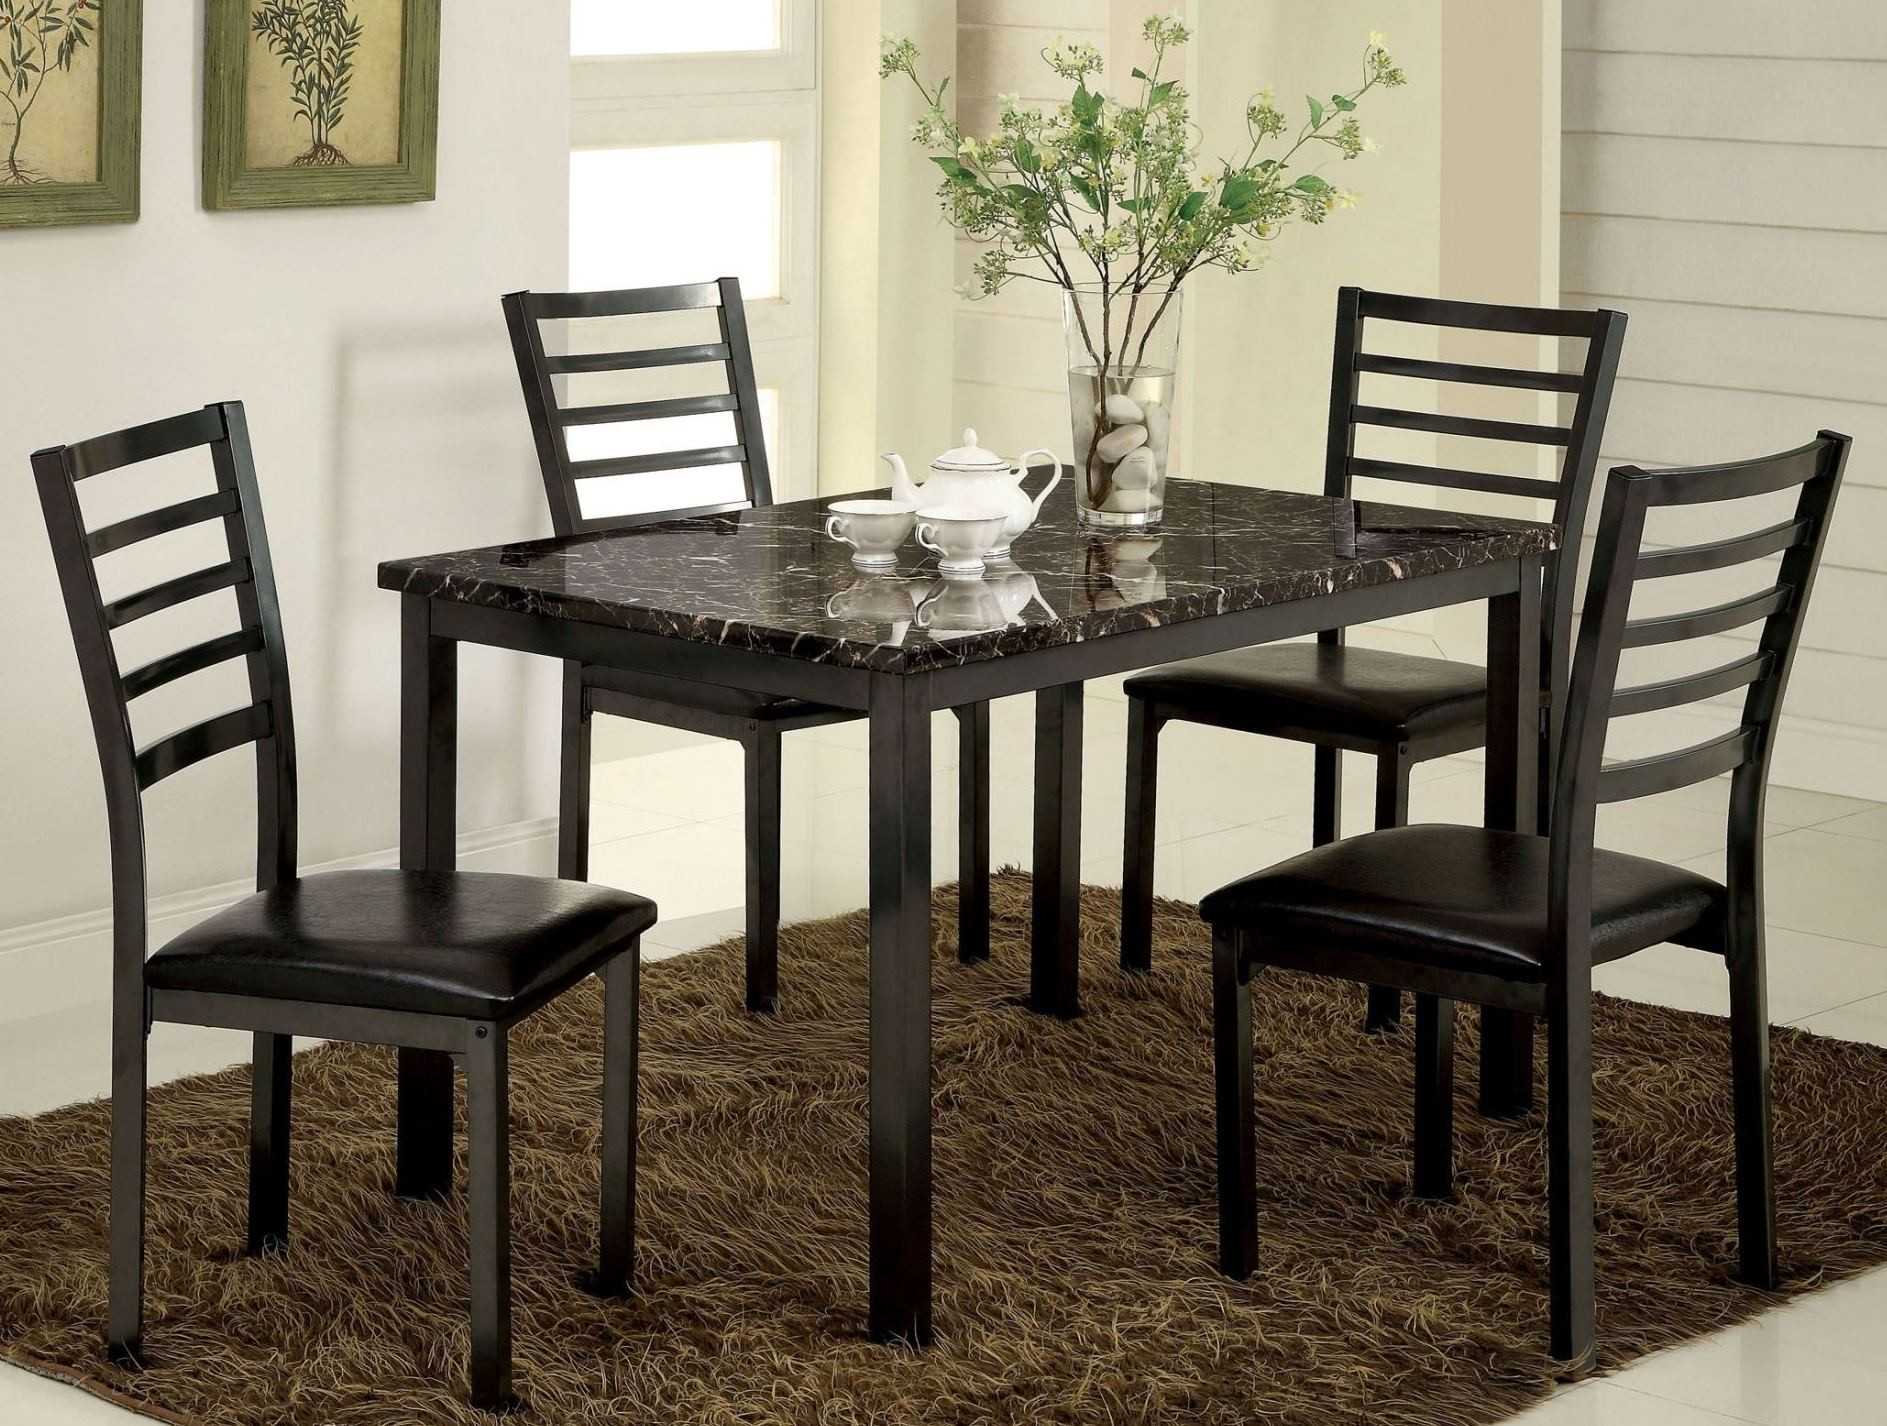 Colman 48 Quot Faux Marble Top Rectangular Leg Dining Room Set